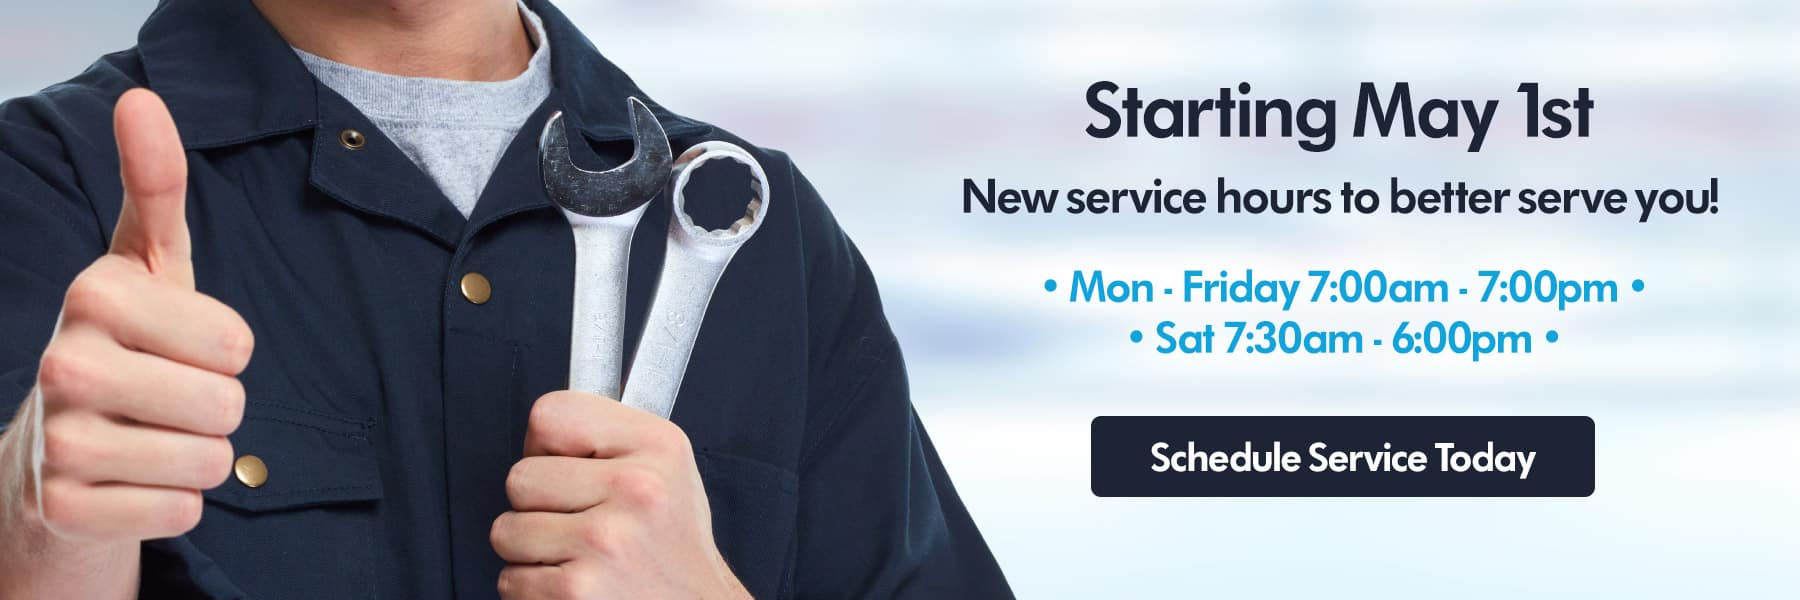 Starting May 1st - New Service Hours To Better Serve You - Monday Through Friday 7am to 7pm - Saturday 7:30am to 6pm - Schedule Your Service Today